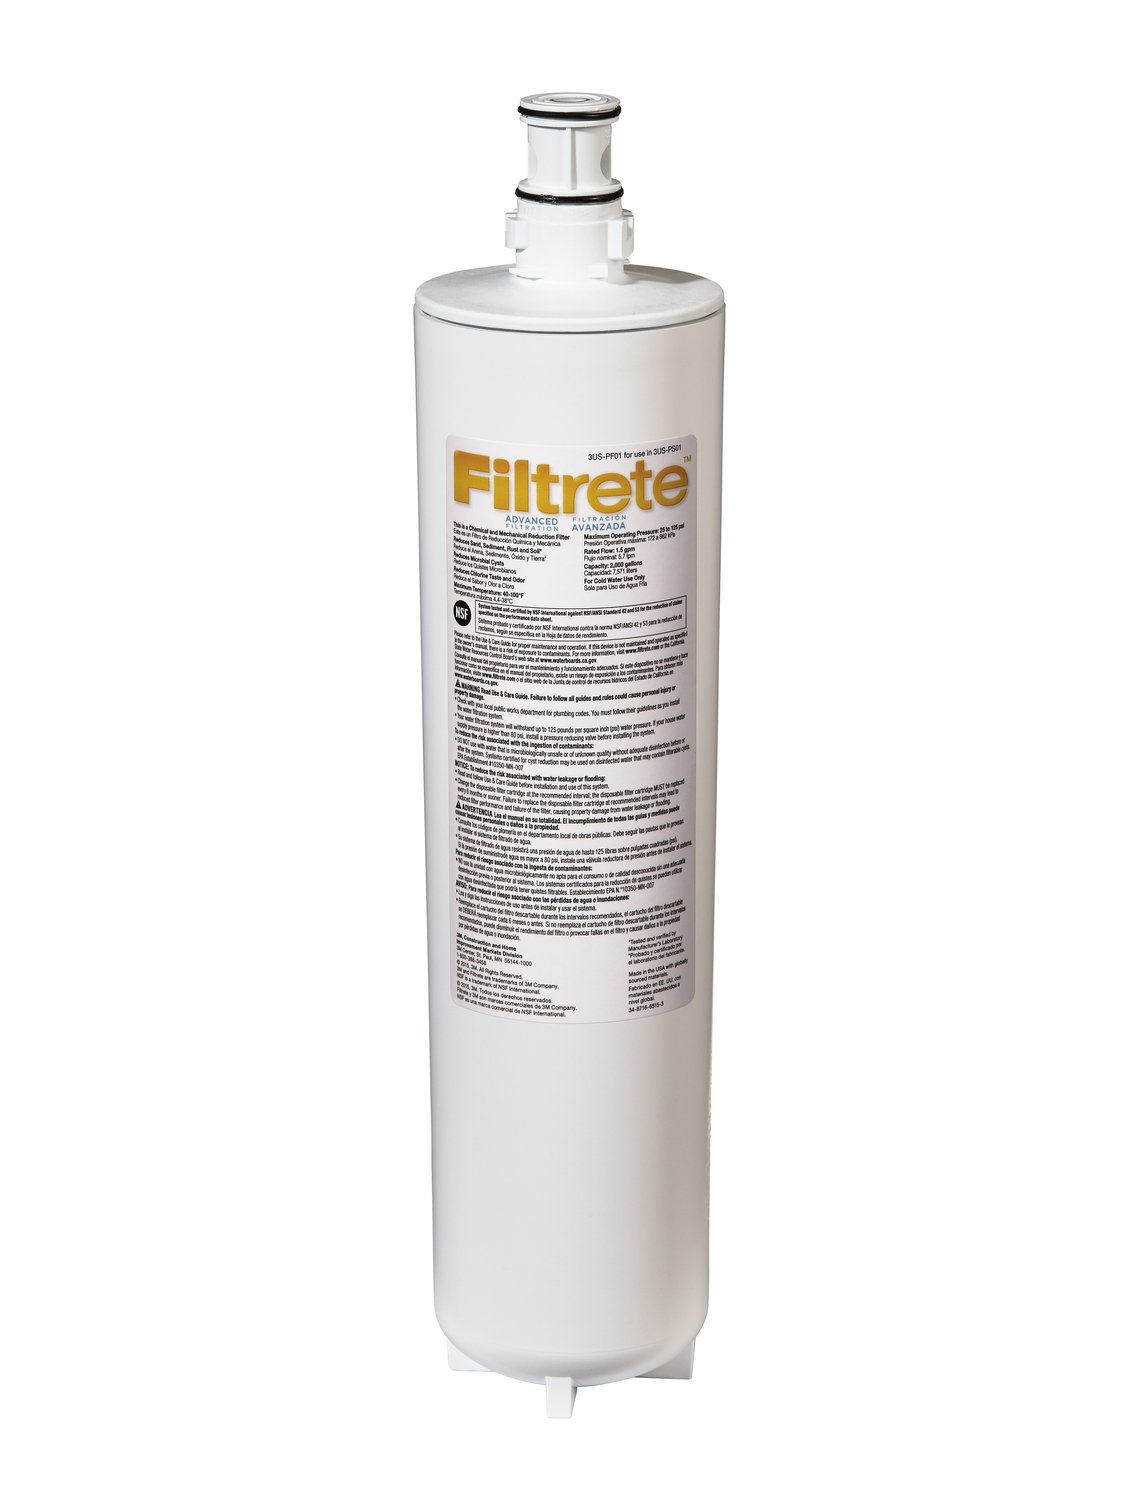 Filtrete Advanced Under Sink Quick Change Water Filtration Filter, 6 Month Filter, Reduces Microbial Cysts, 0.5 Microns Sediment and Chlorine Taste & Odor, (3US-PF01) by Filtrete